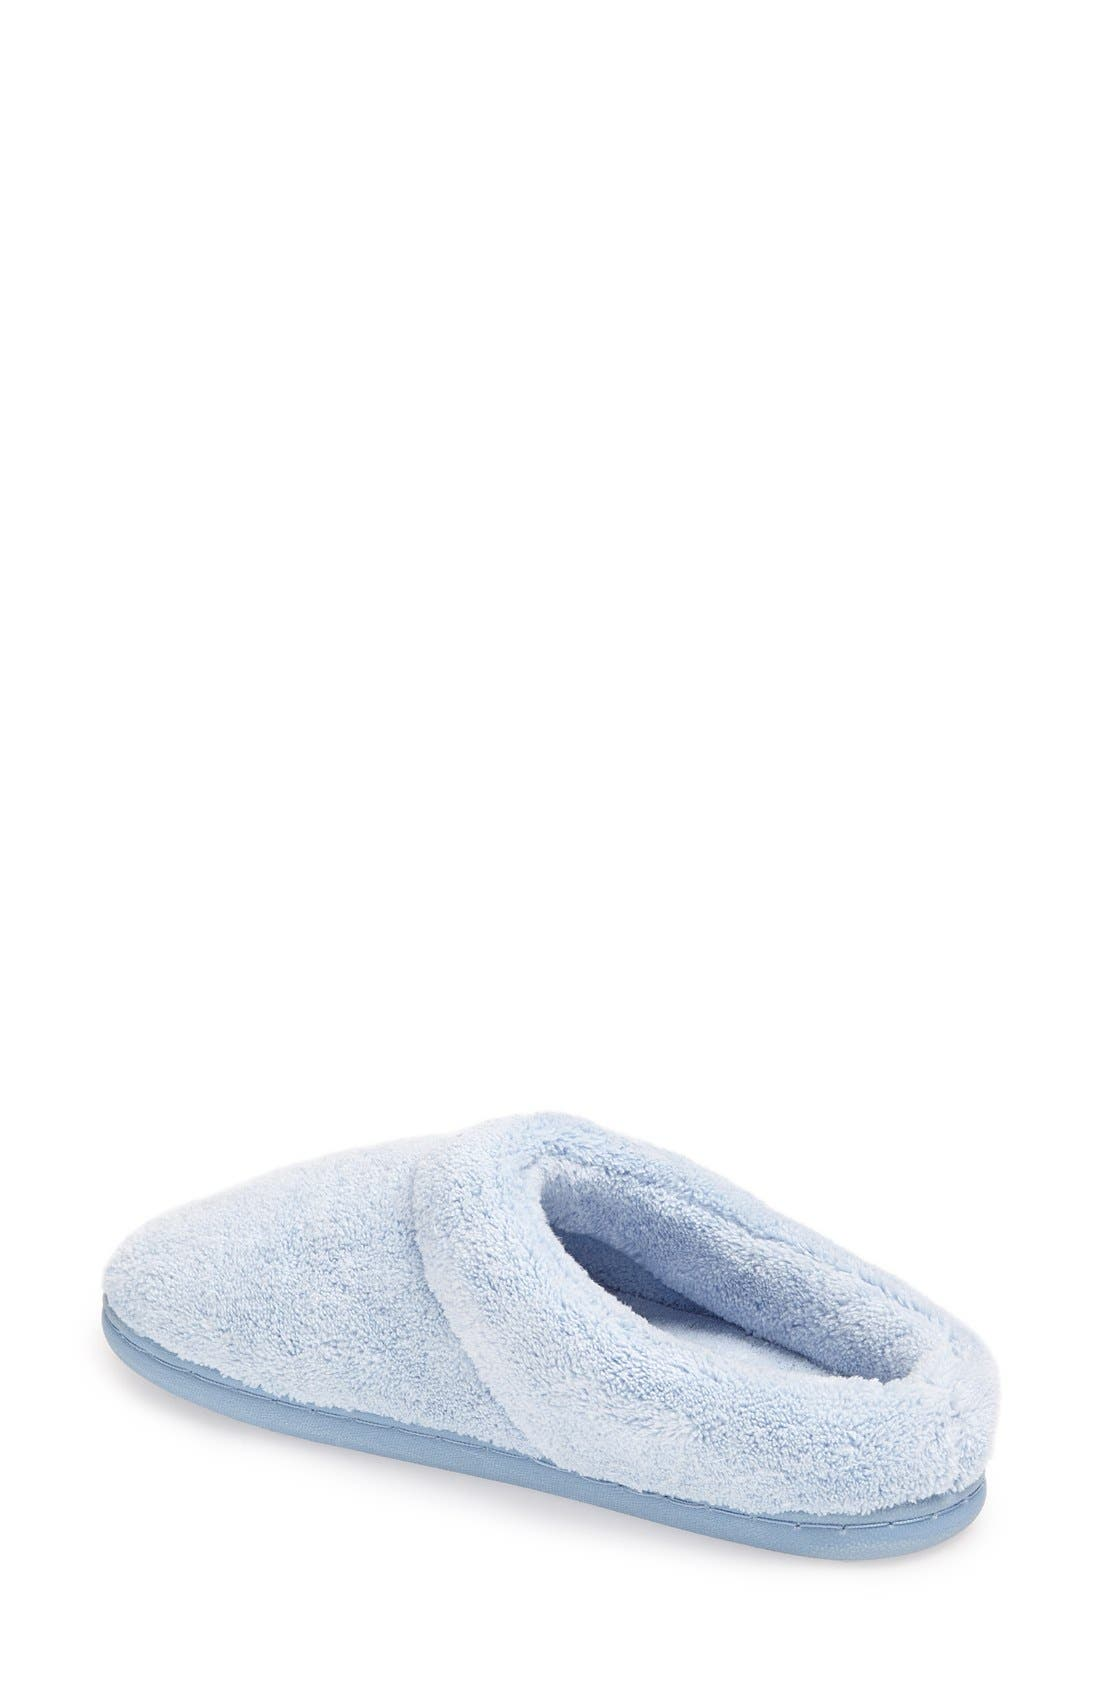 'Windsock' Slipper,                             Alternate thumbnail 2, color,                             Light Blue